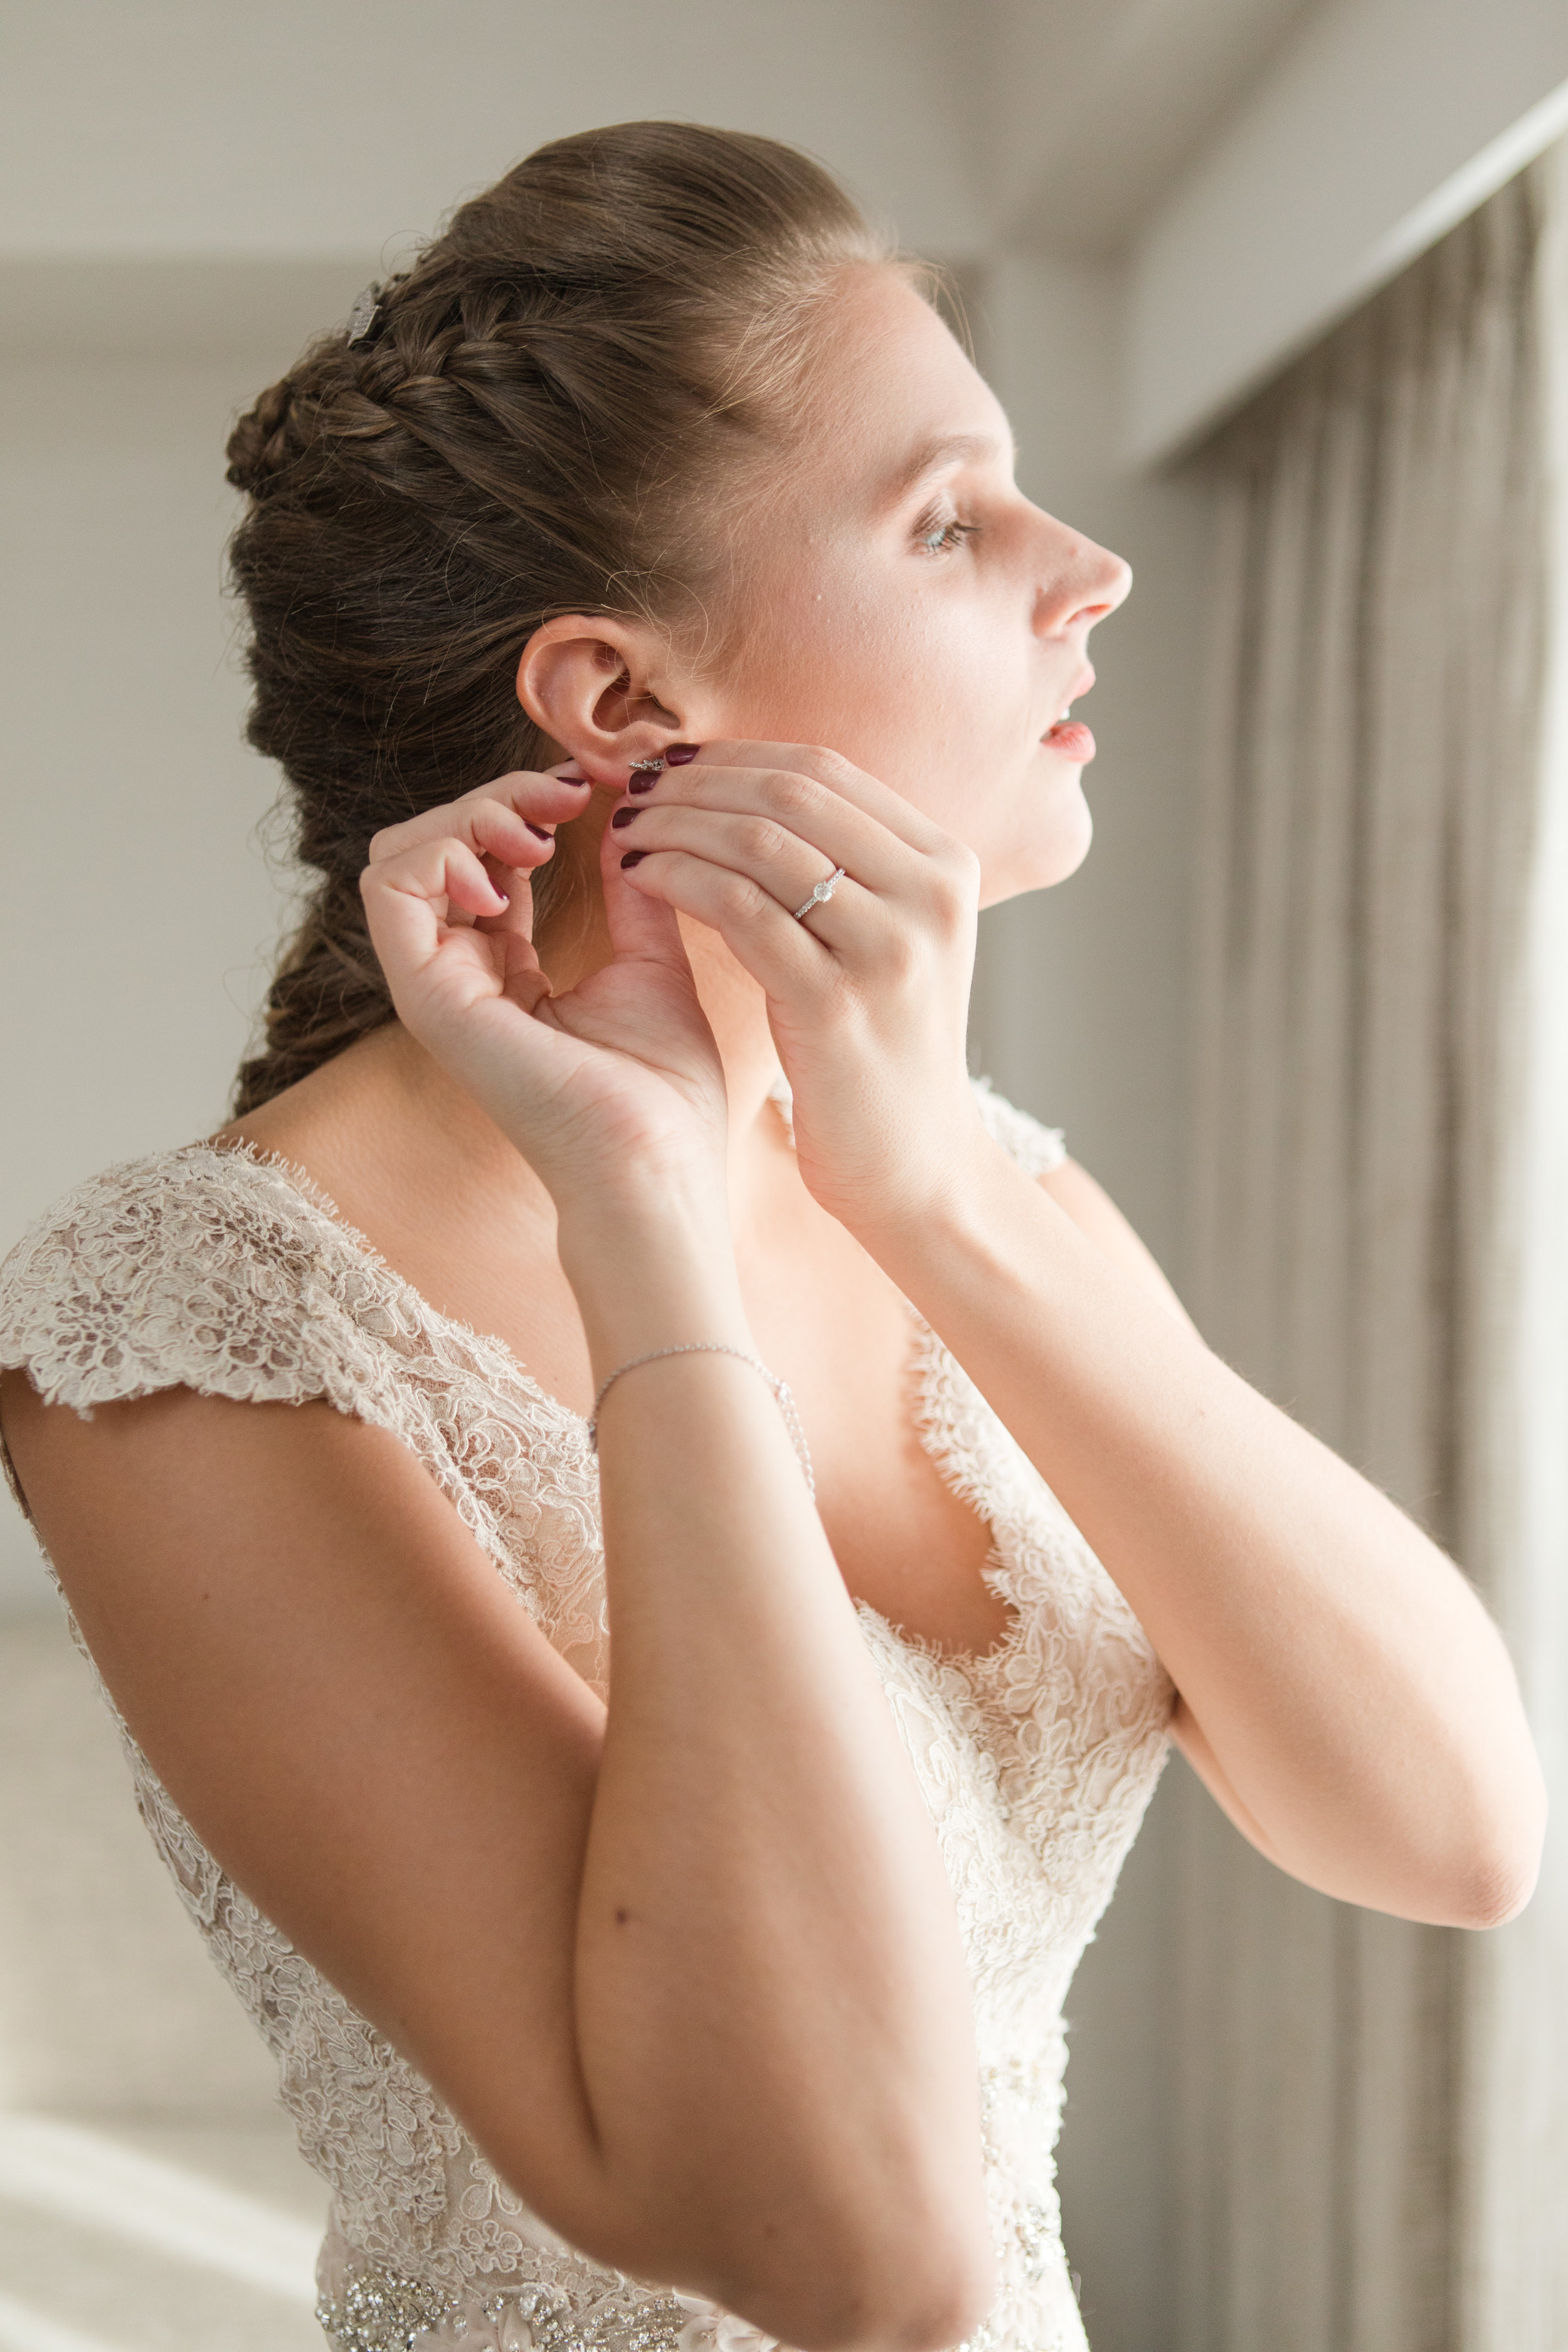 bride putting in earrings on wedding day in lace allure bridal gown photographed by jaye kogut